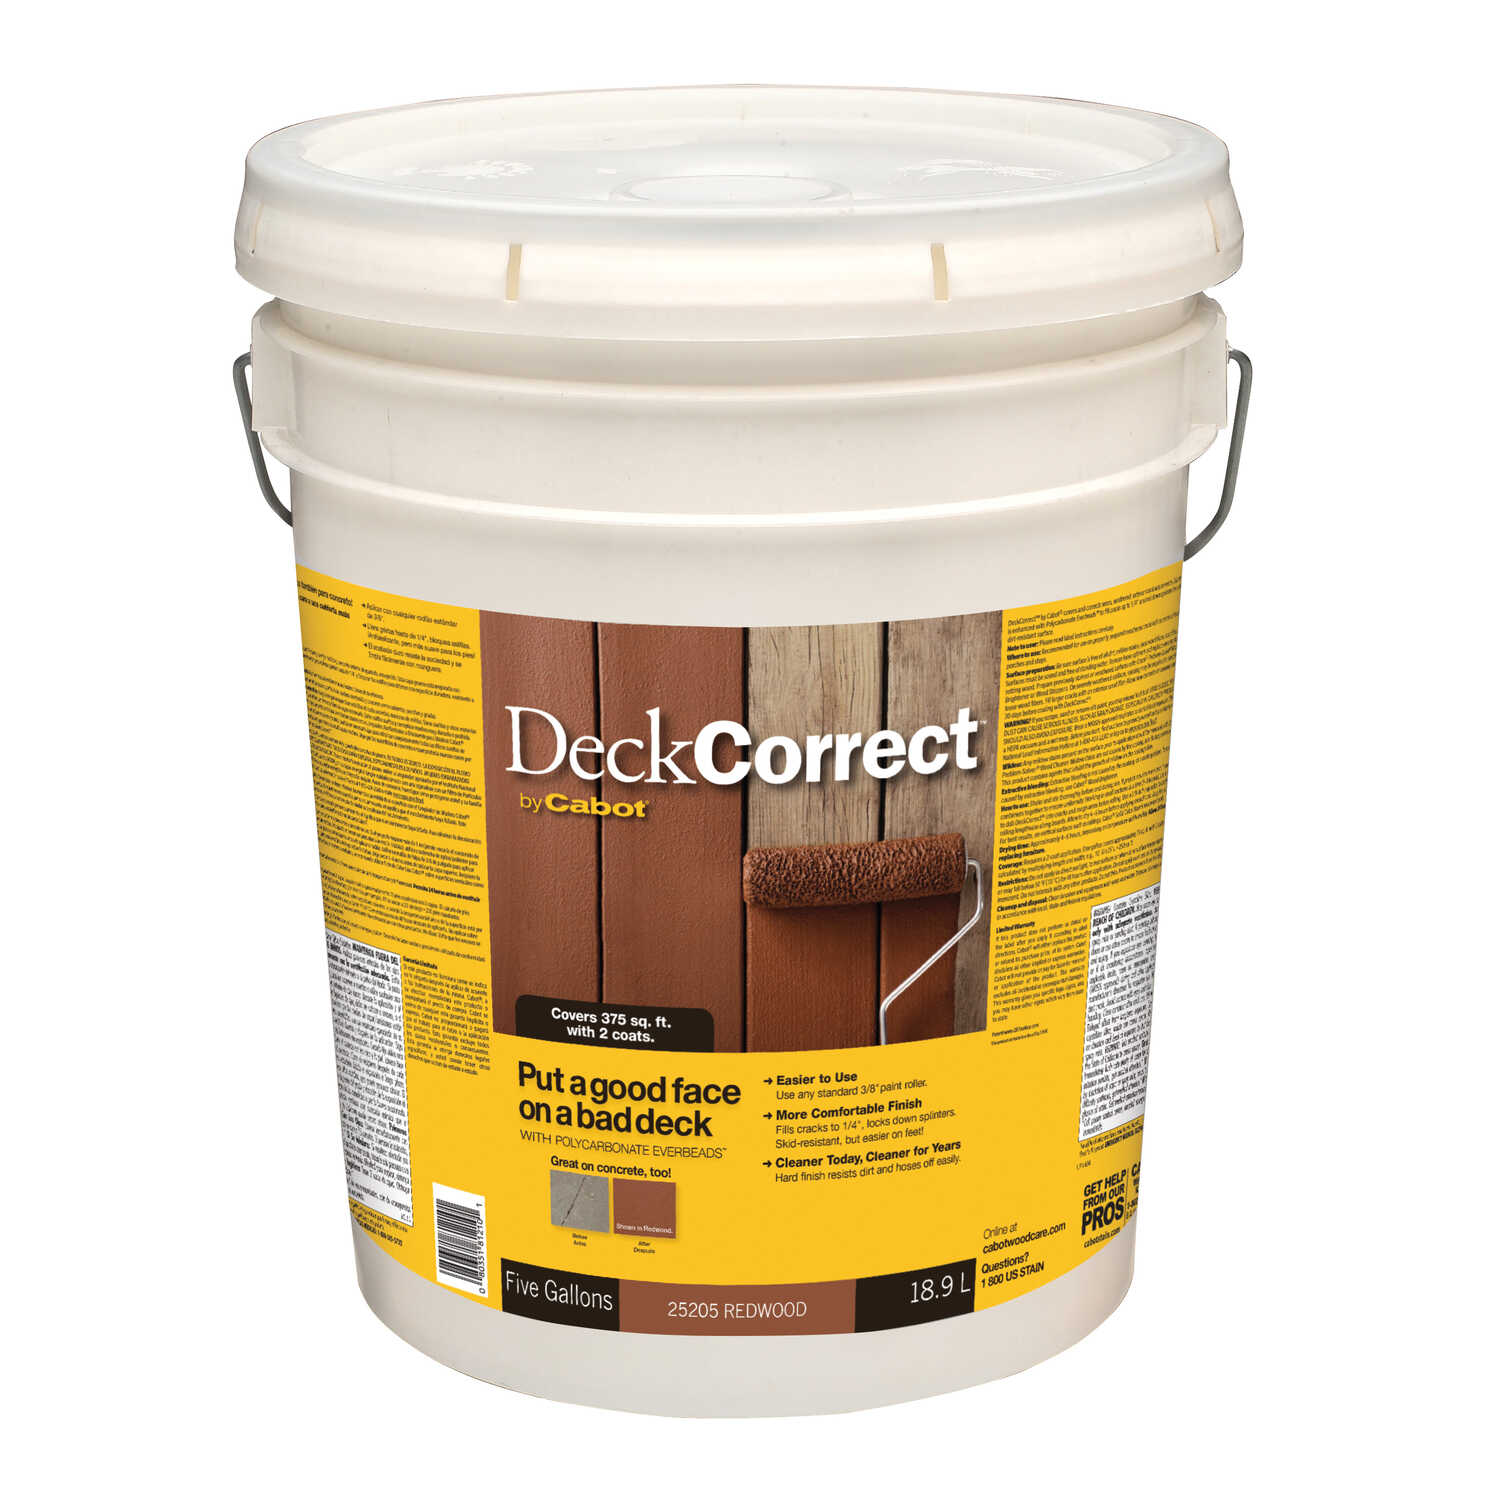 Cabot  Deck Correct  Solid  Redwood  Water-Based  Latex  Deck Stain  5 gal.